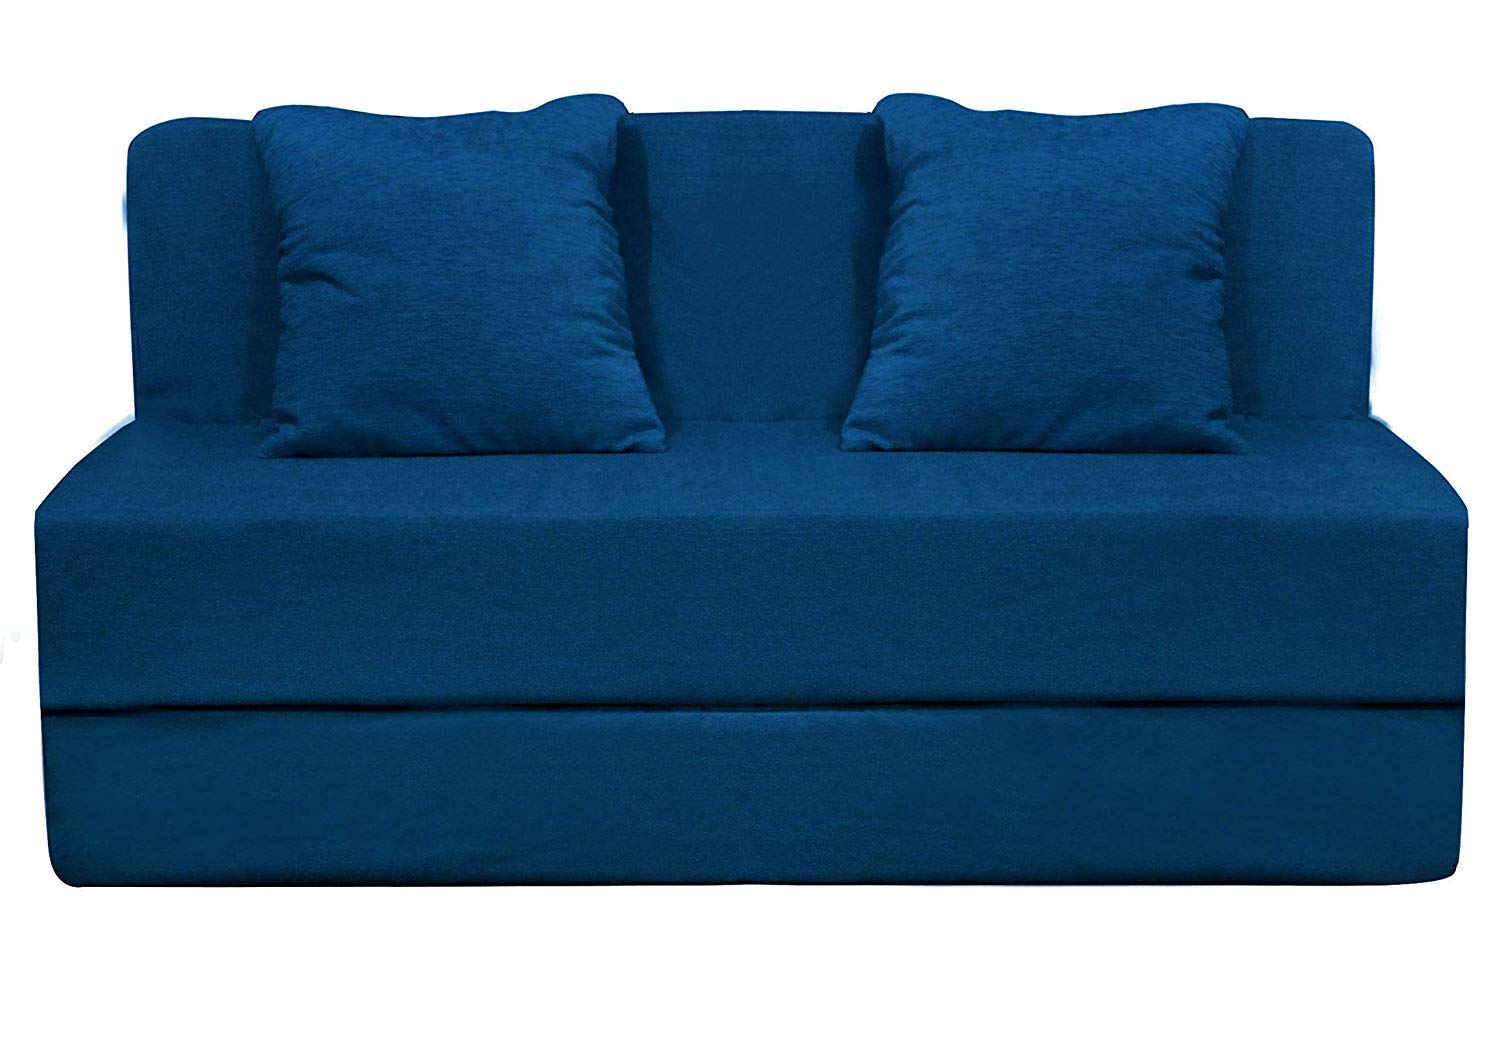 Aart Store Sofa Cum Bed Furniture with 2 Cushion